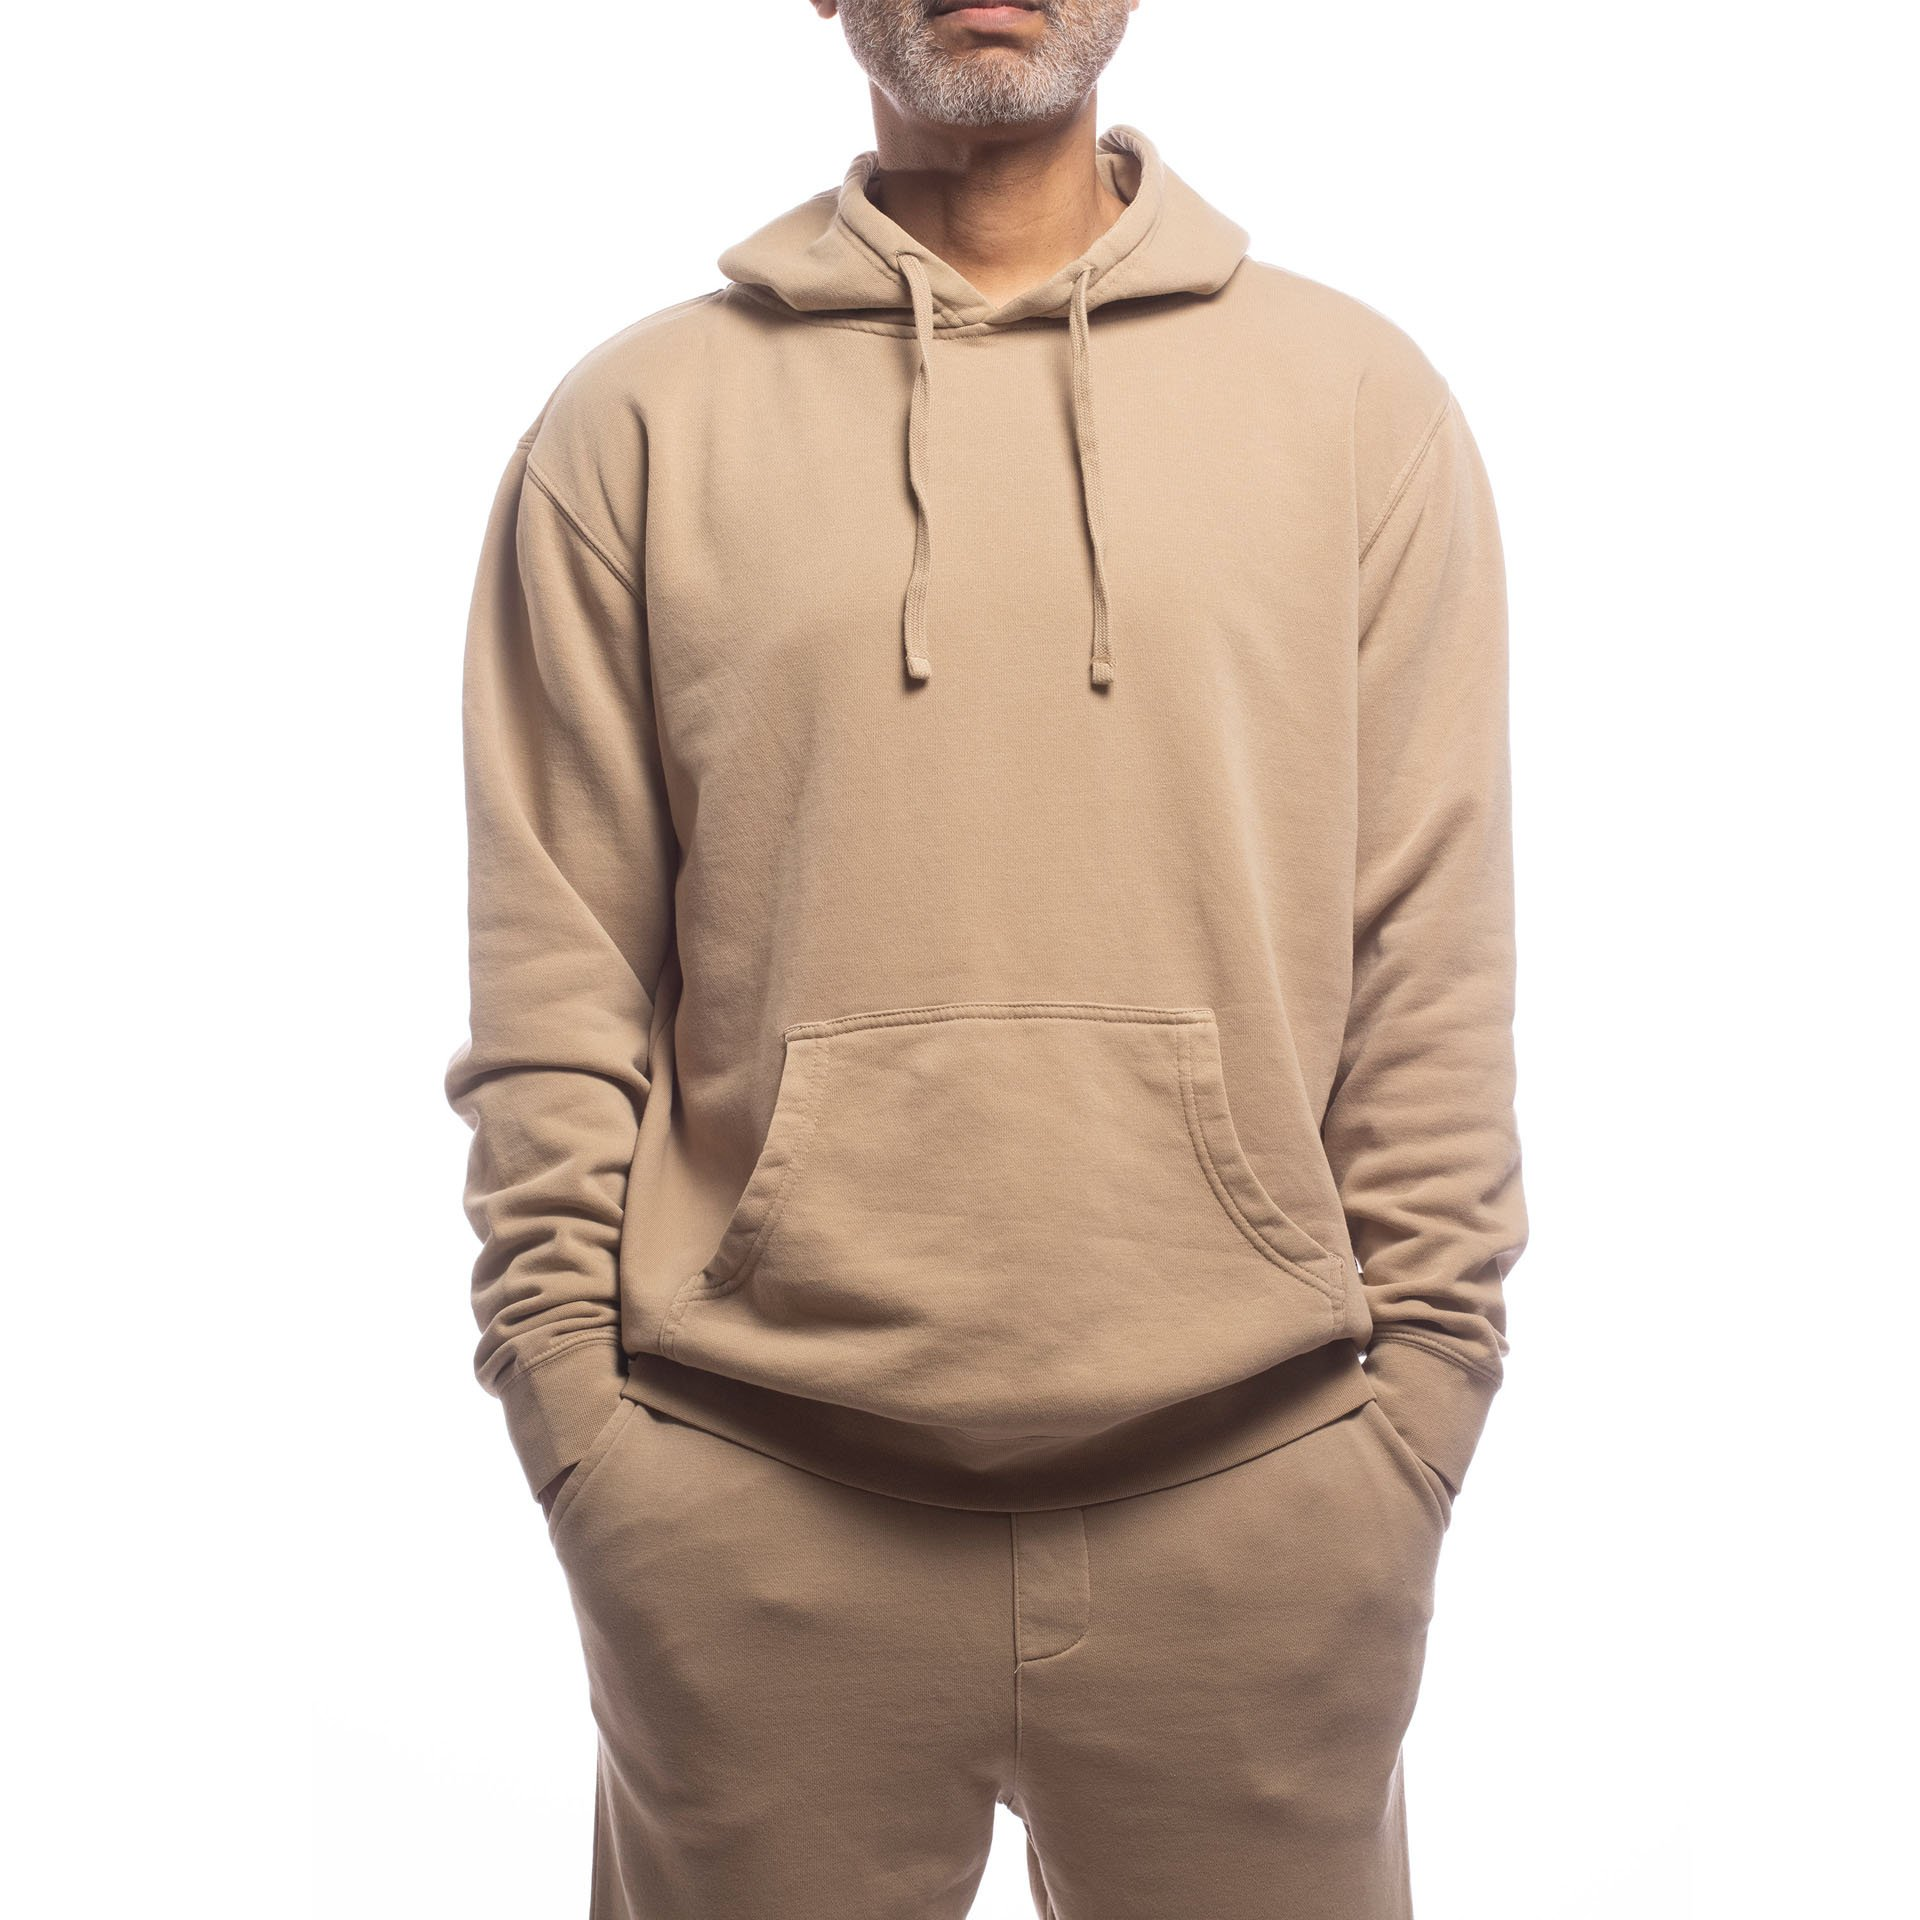 Unisex Upcycled Hoodie - Made For The People - Brown